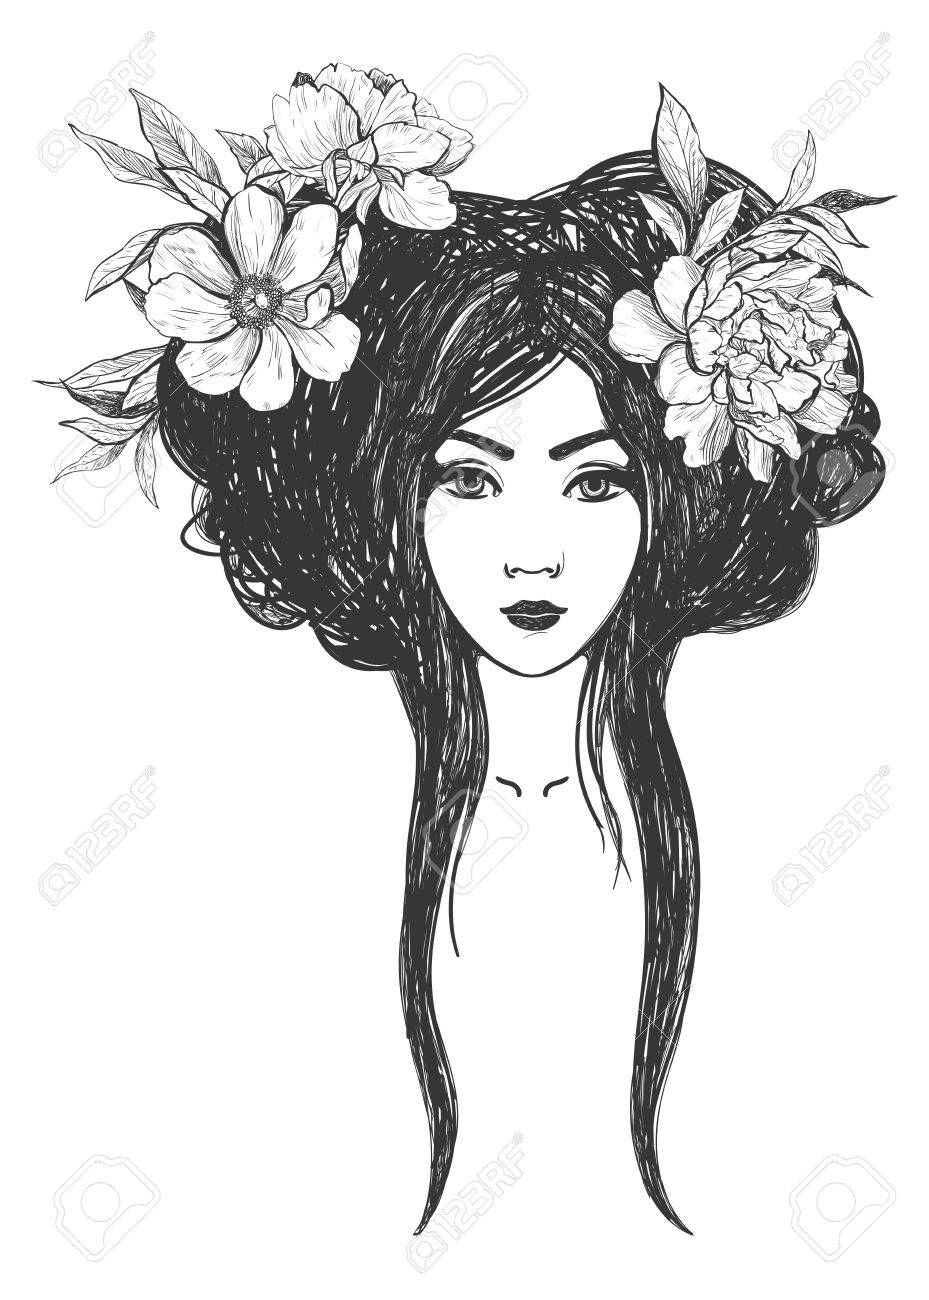 Woman with flowers. Tattoo art, coloring books. illustration Isolated on white background. - 52783009